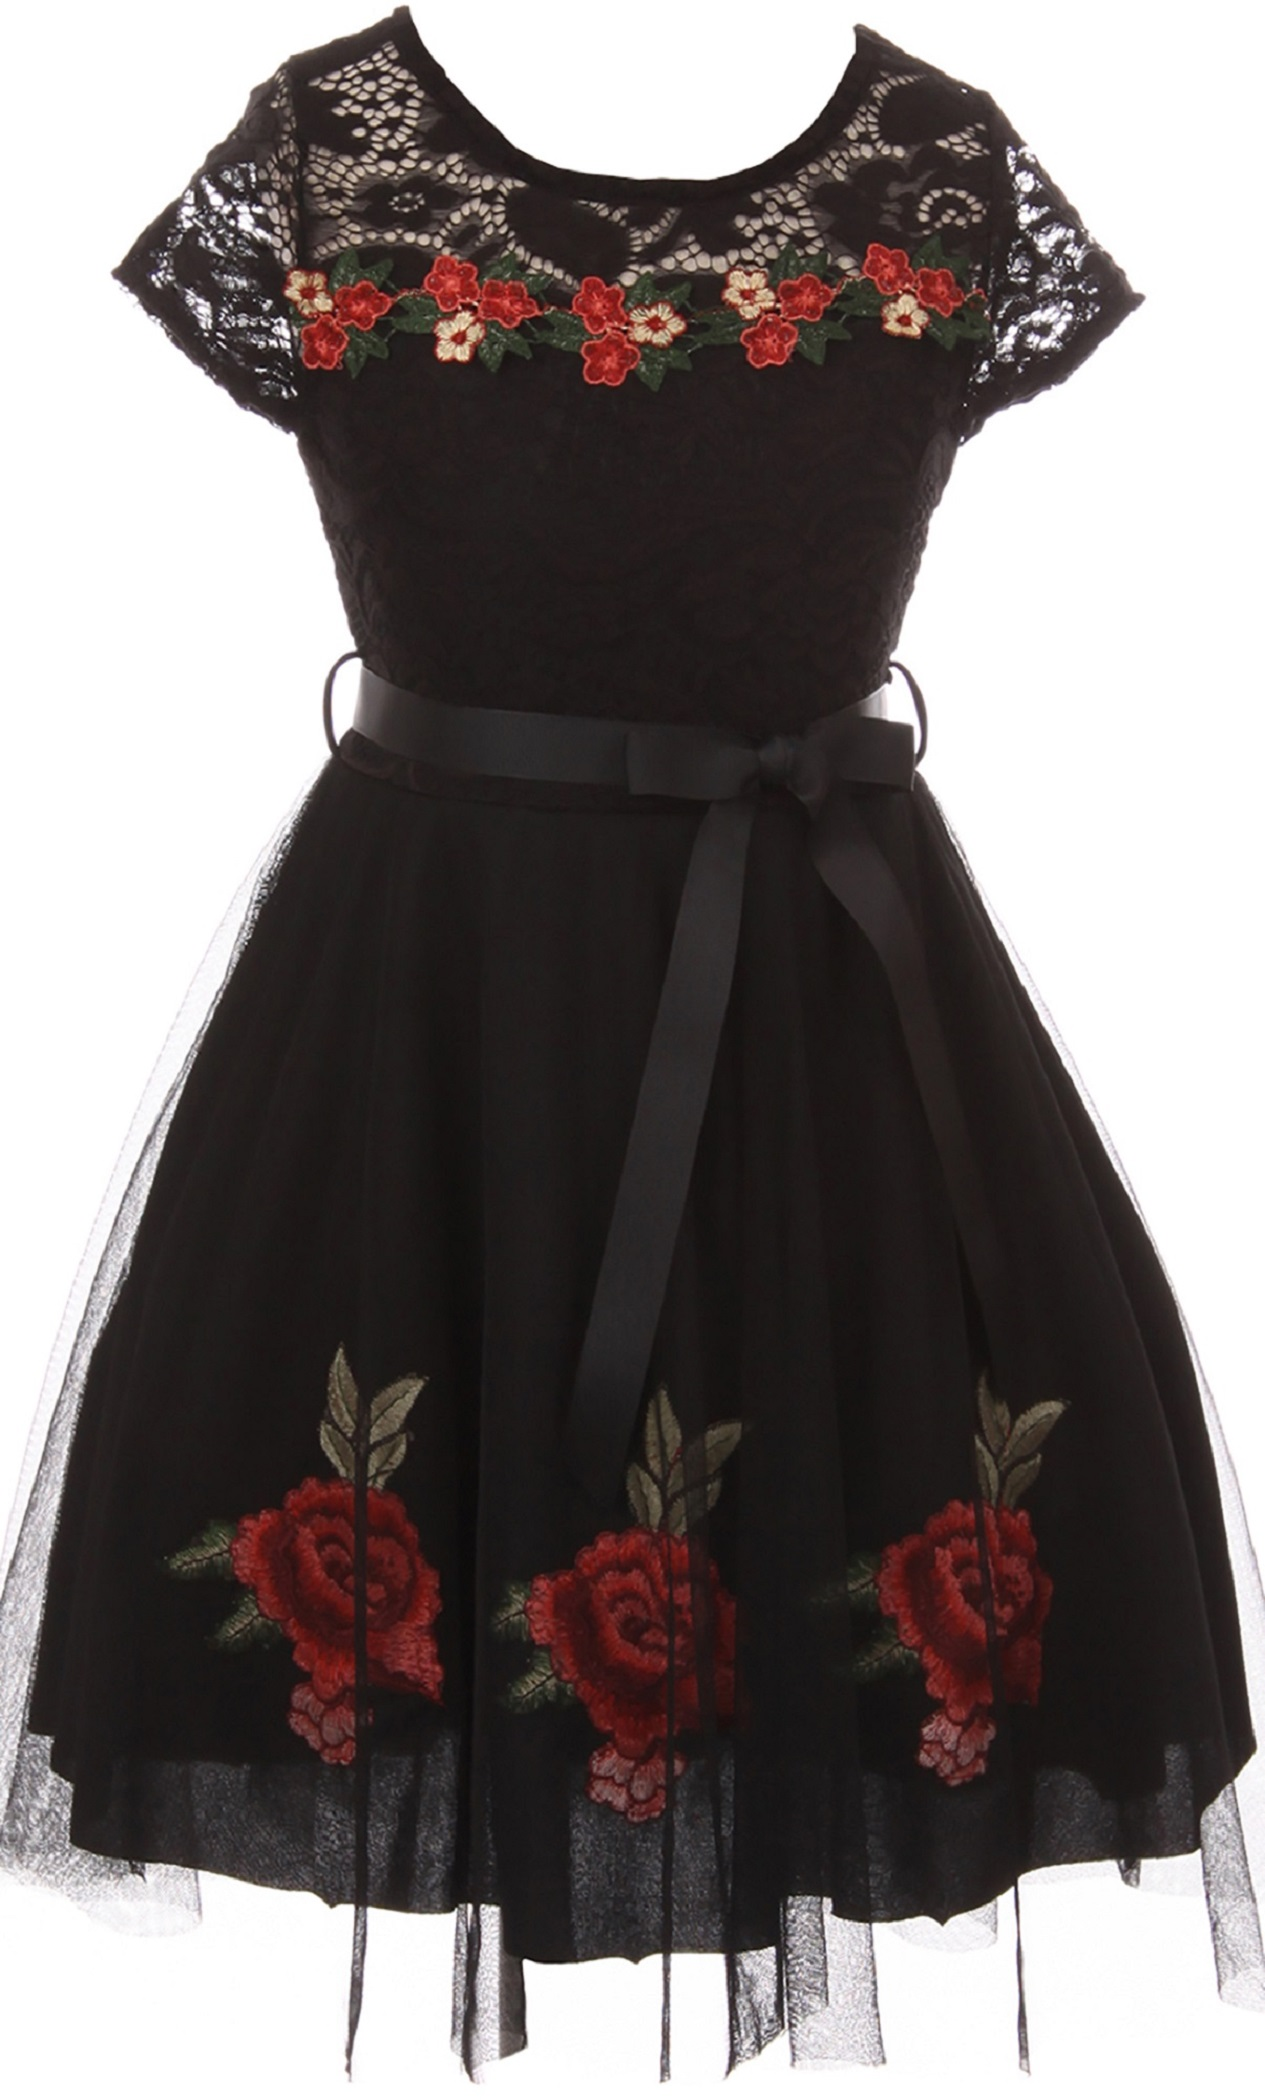 fa03a993e91 BluNight Collection - Little Girls Cap Sleeve Floral Lace Roses Tulle  Christmas Holiday Flower Girl Dress Black 4 (2J0K9S7) - Walmart.com